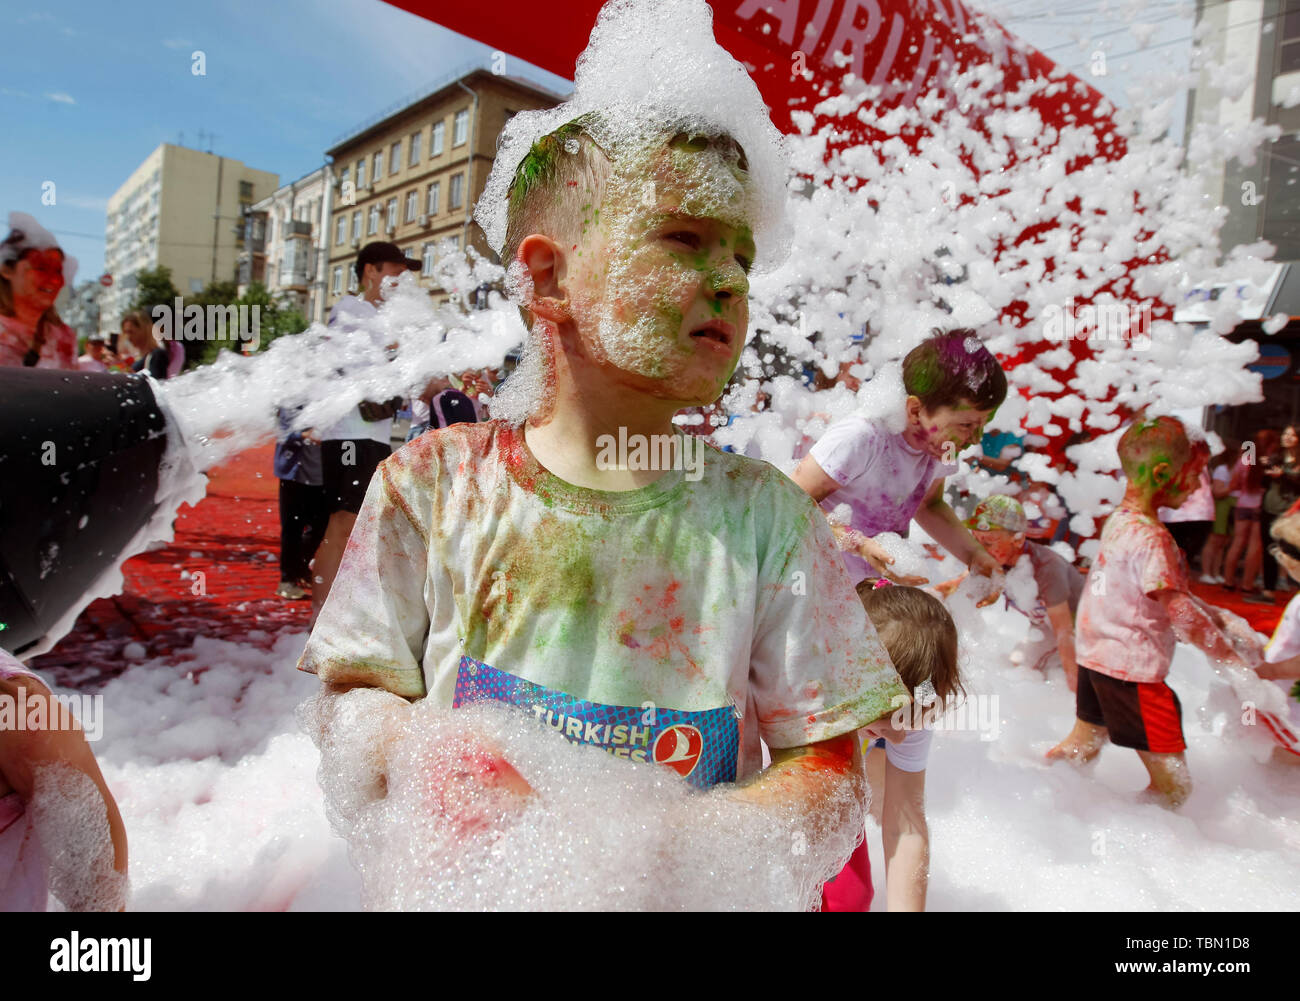 A kid showered with colours during the event. The Color Run, also known as 'the happiest 5,000 meters on the planet', is an event series and paint race, its first event was in the United States in January 2012 since then the run has spread across the globe leaving a trail of color and happy runners across different continents and countries. The untimed event has no winners or prizes, but runners are showered with colored powder, made of food-grade corn starch, at stations along the run. In Ukrainian capital the first time Kyiv Color Run started in 2014. - Stock Image